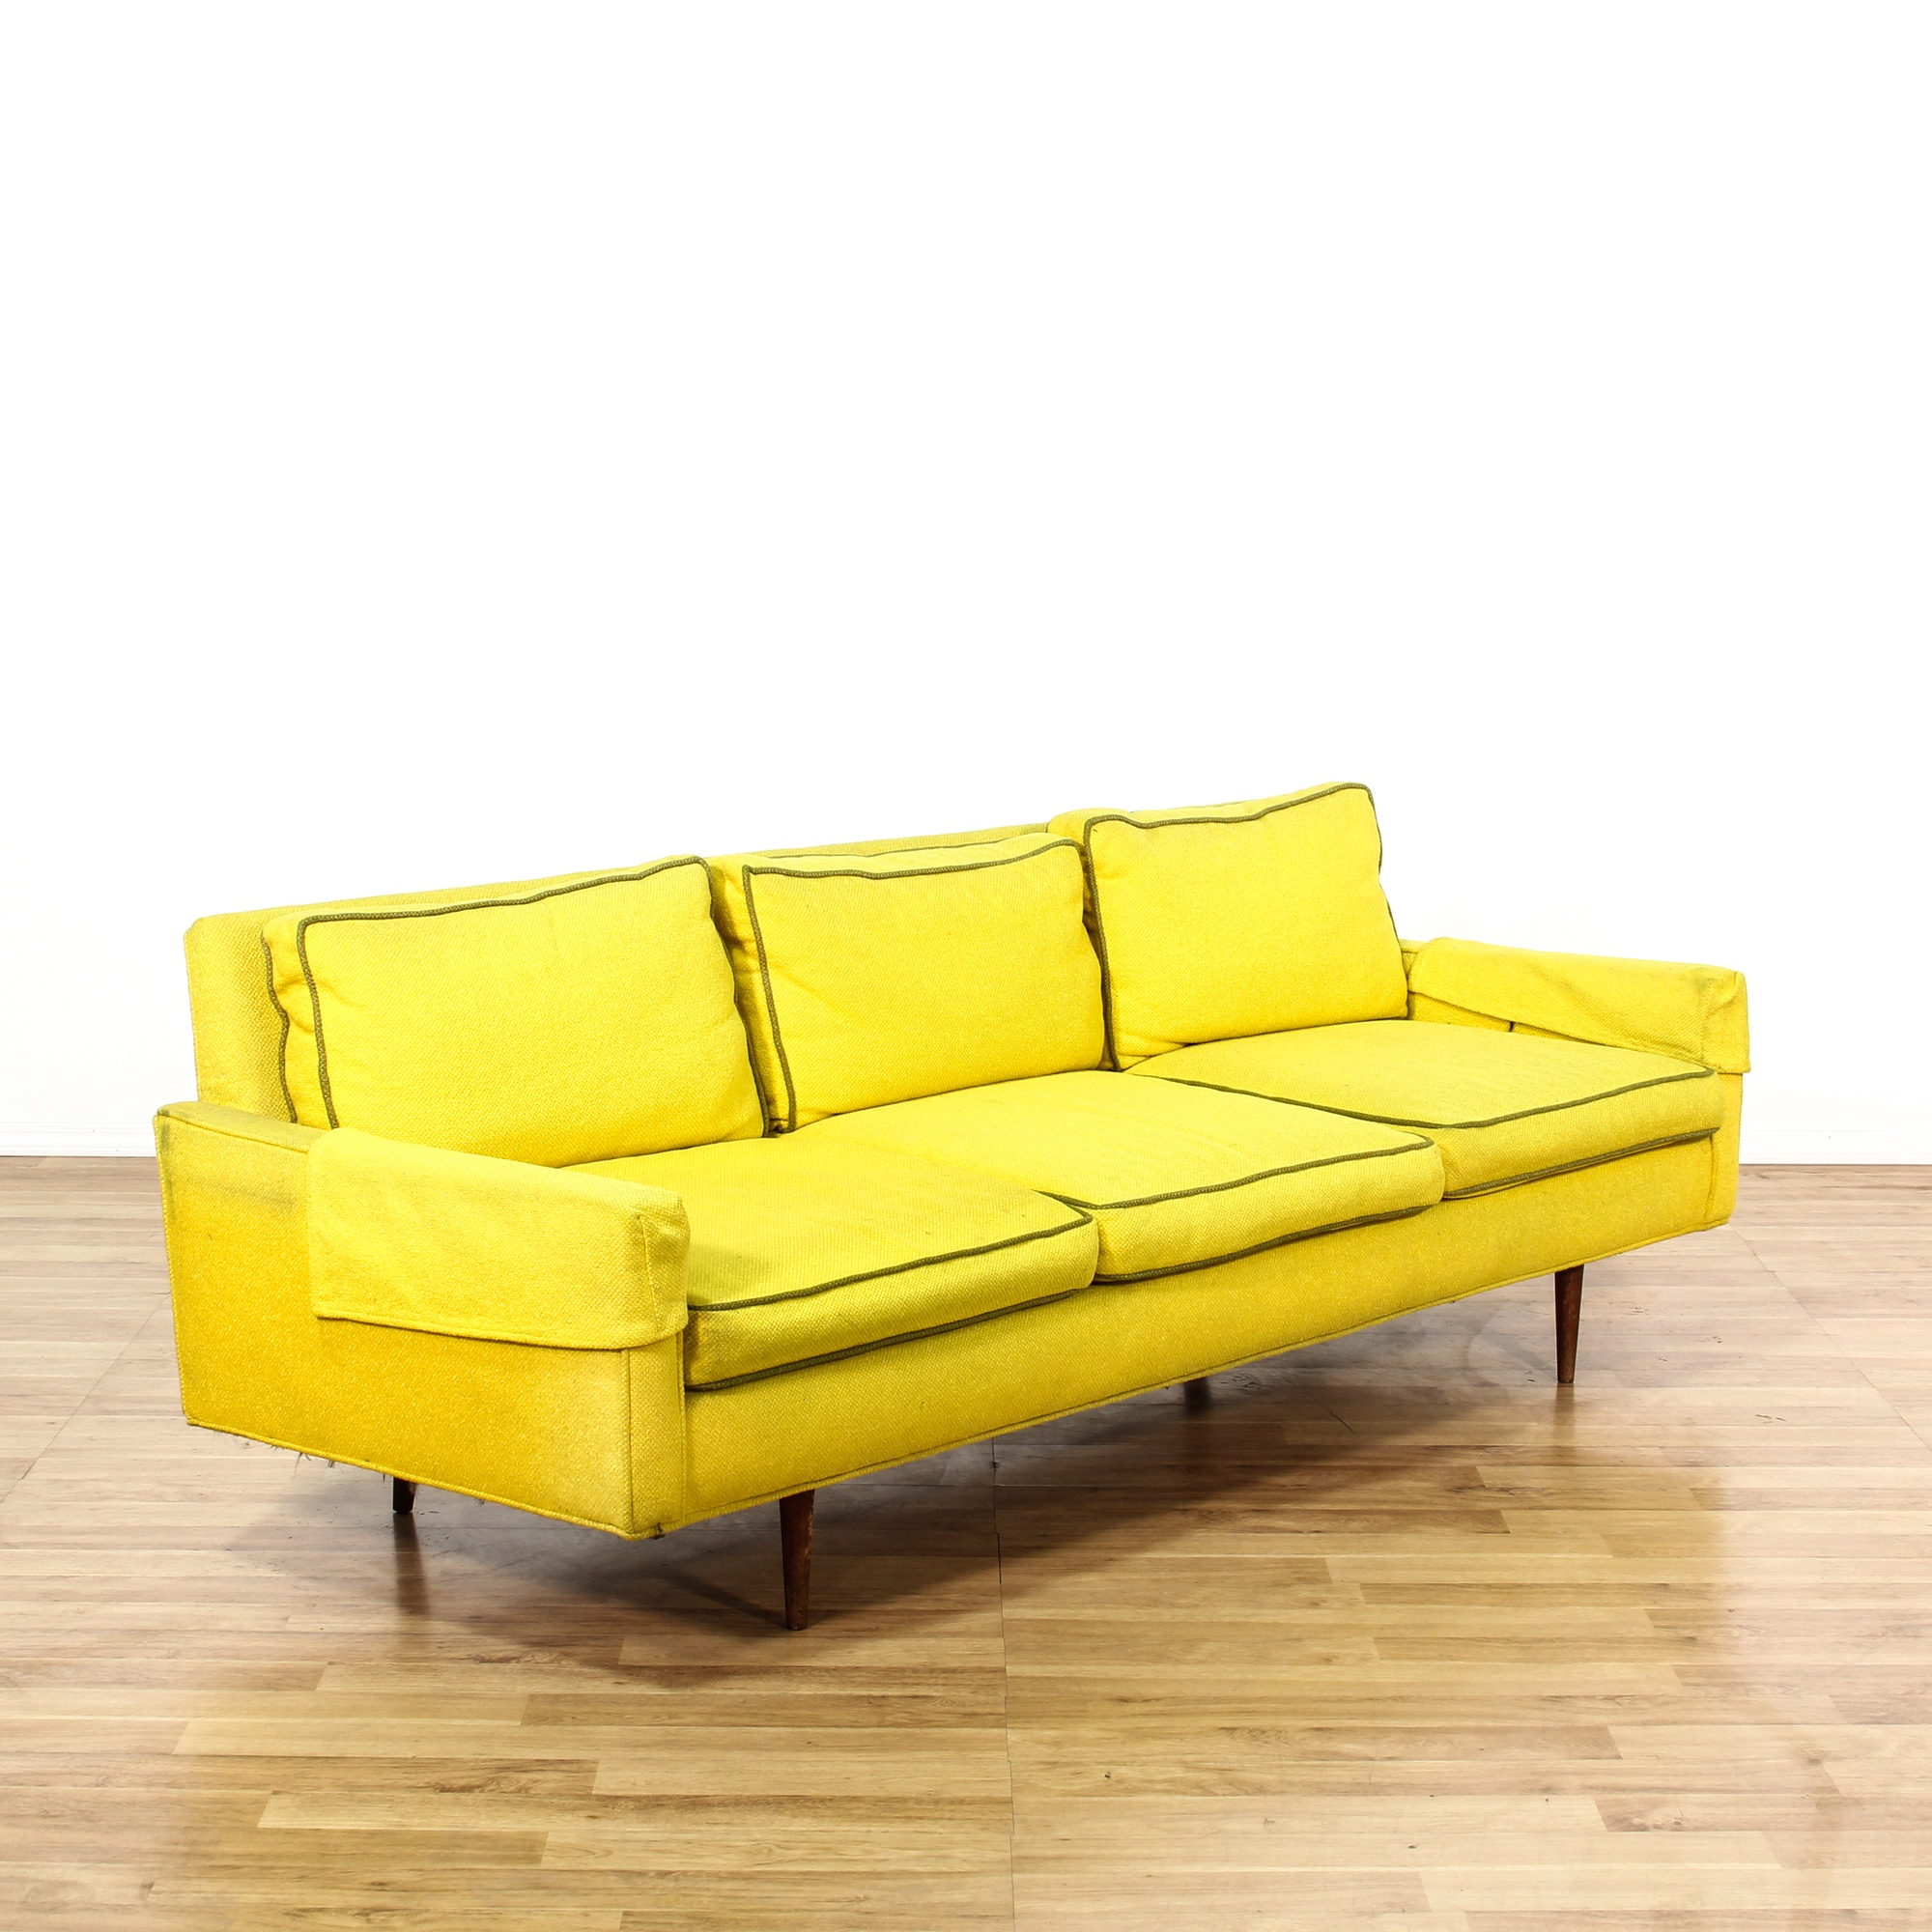 Bright yellow mid century modern sofa loveseat vintage for Mid century modern furniture san francisco